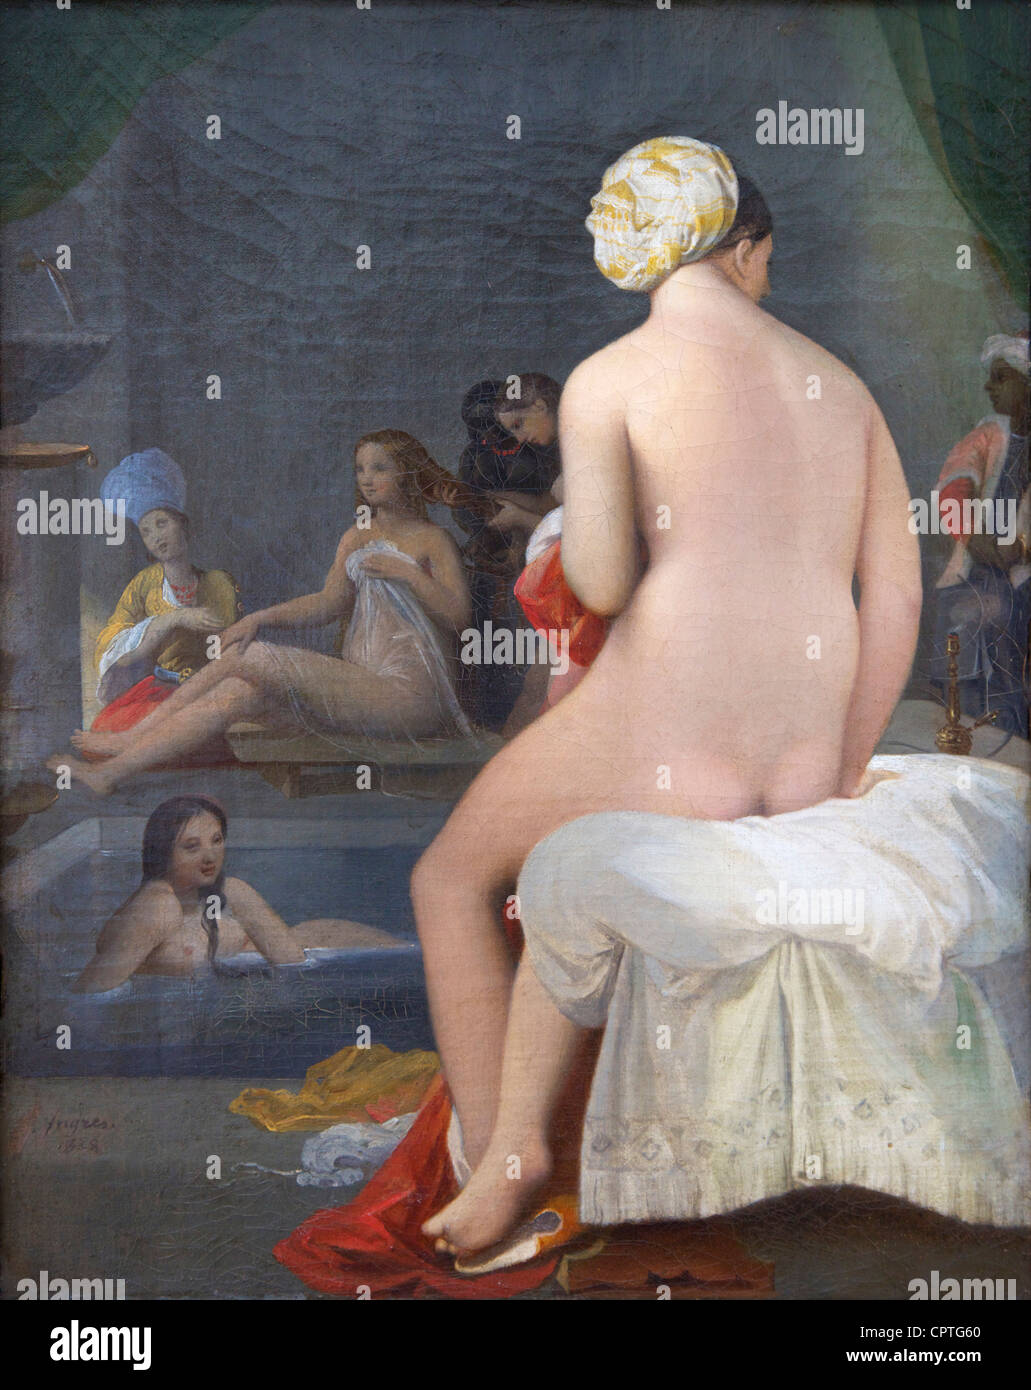 The little bather, interior of harem, by Jean-Auguste-Dominique Ingres, 1828, Musee du Louvre Museum, Paris, France, - Stock Image